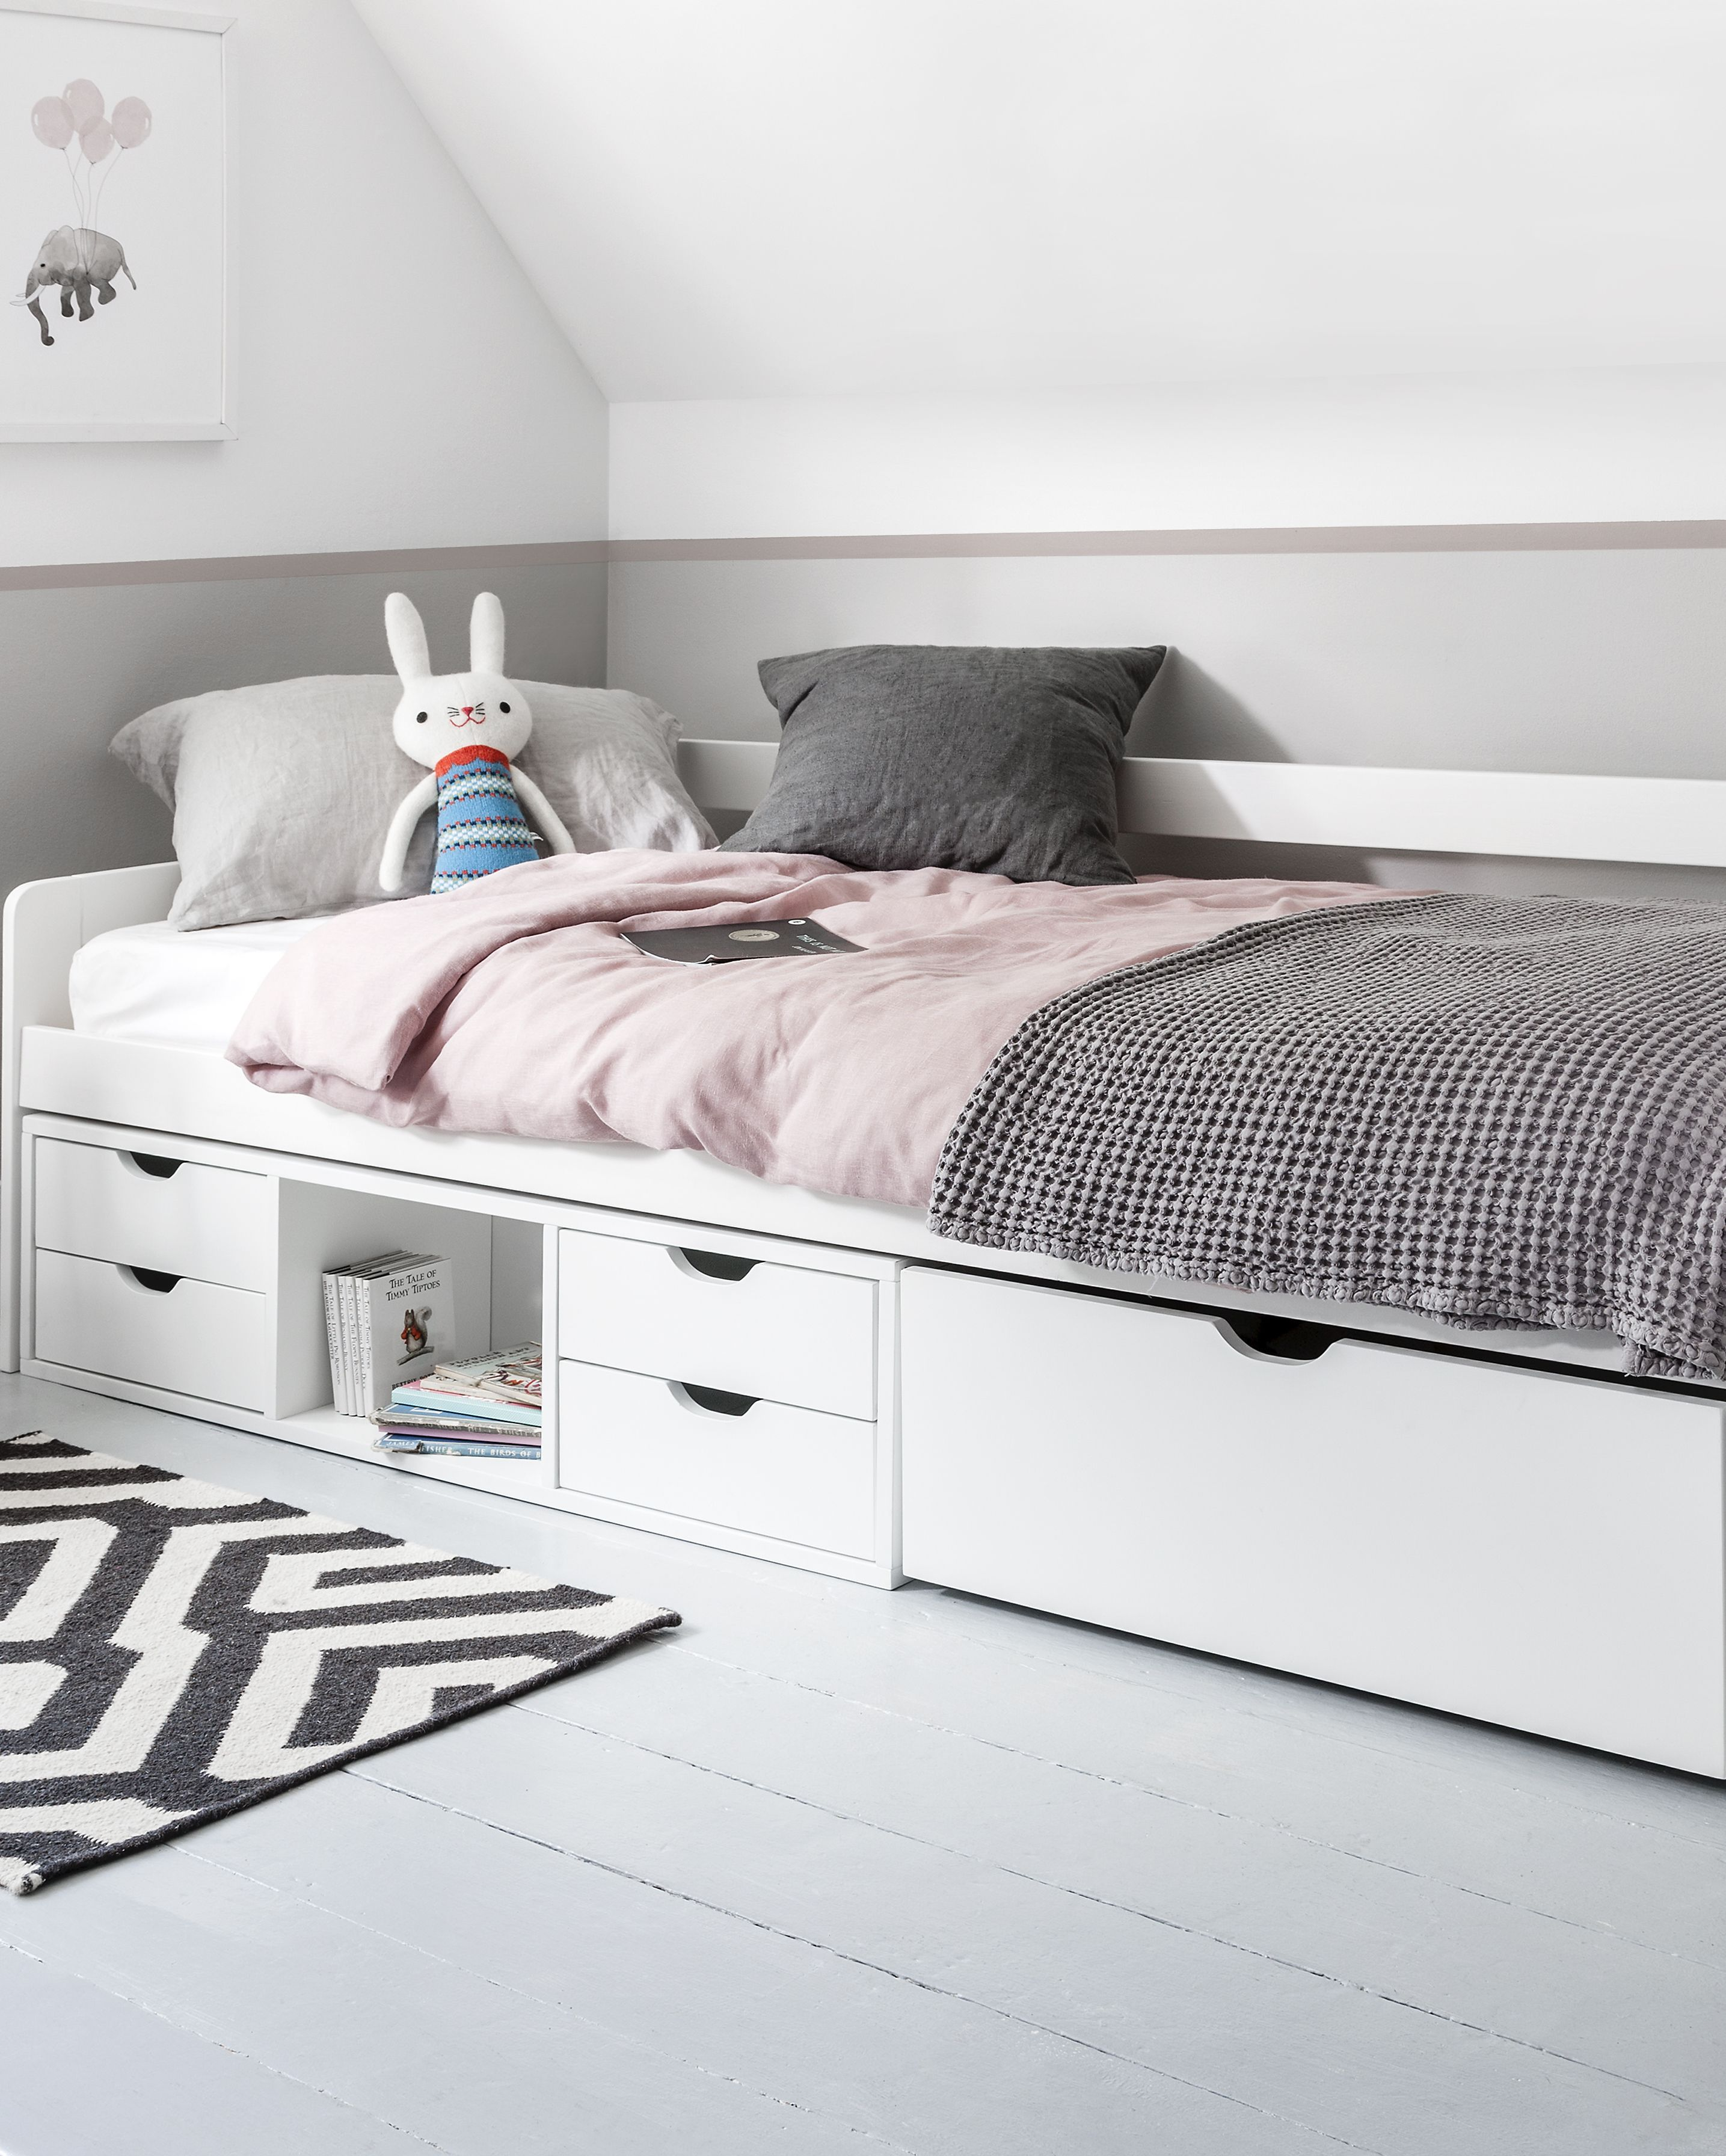 Eva Day Bed Cabin With Pull Out Drawers In 2020 Daybed With Storage Bed Frame With Storage Bed For Girls Room